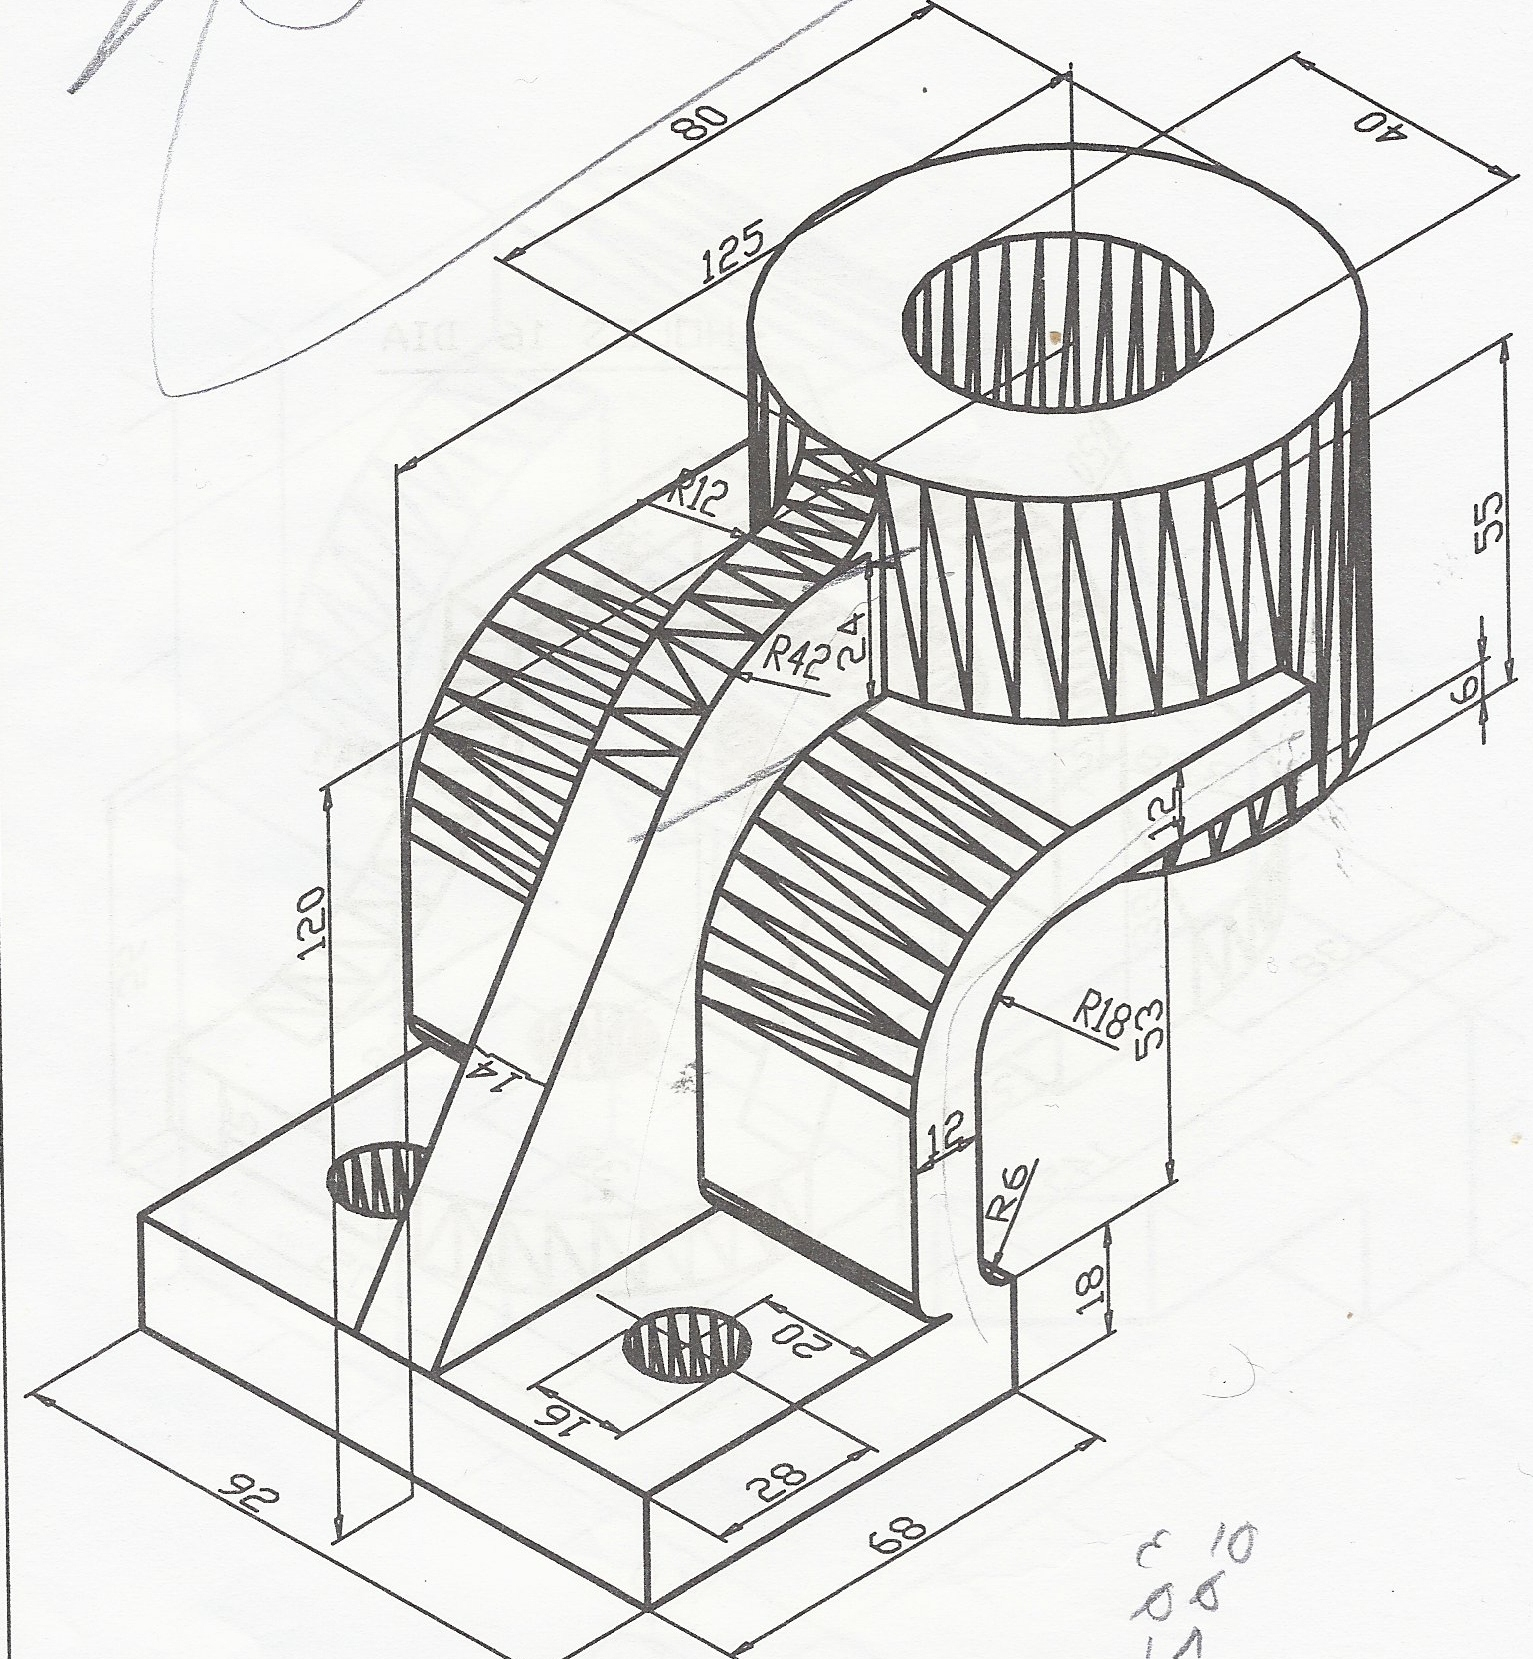 tutorial 15 3d engineering drawing 2 auto cad grabcad AutoCAD 3D Mechanical Engineering Designs step 1